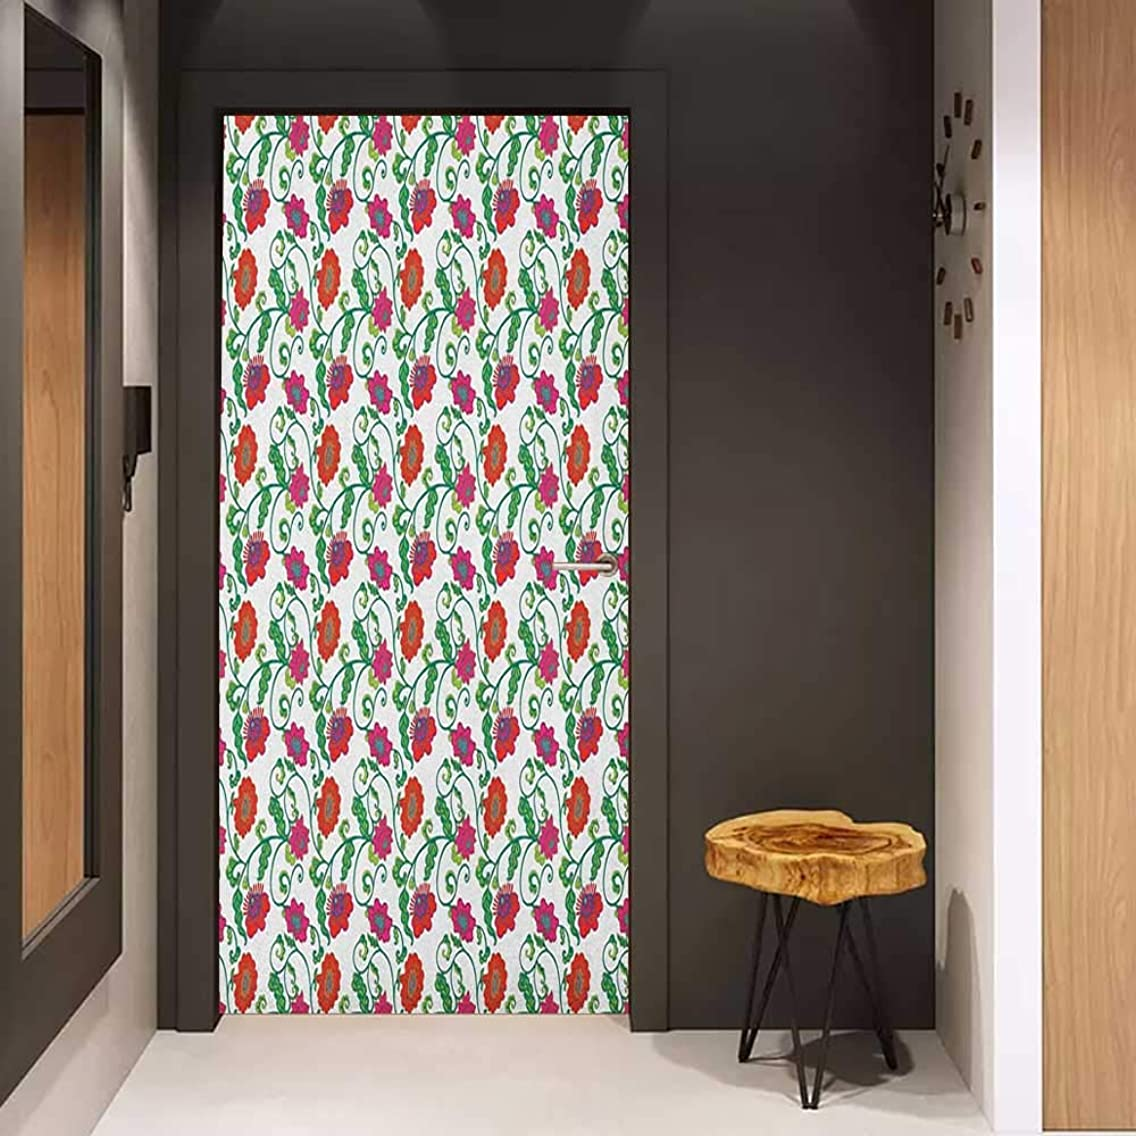 Onefzc Door Wall Sticker Floral Romantic Blooming Spring Flowers with Ornamental Swirled Branches and Foliage Leaves Mural Wallpaper W38.5 x H79 Multicolor